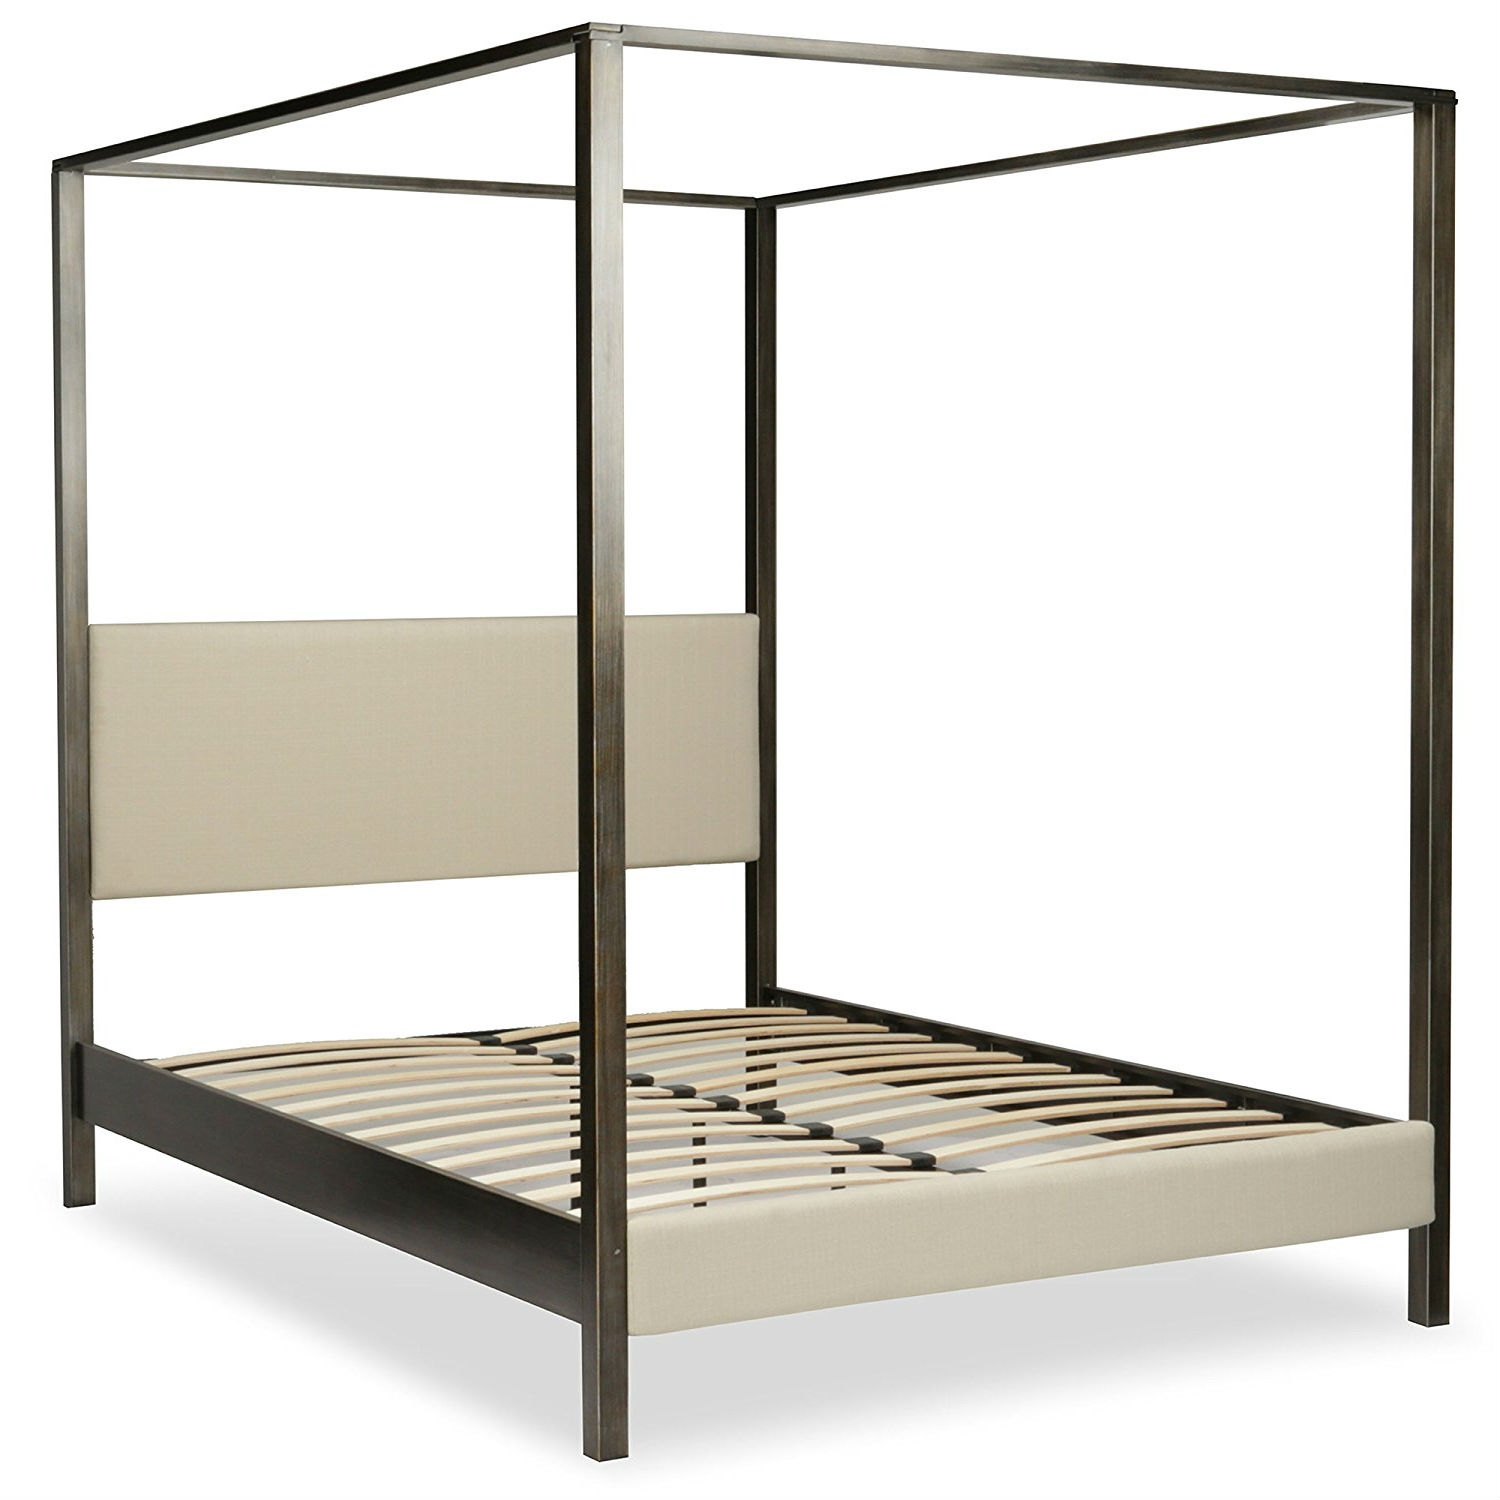 King Size Upholstered Canopy Bed Frame With Wood Slats In Platinum Slate Finish